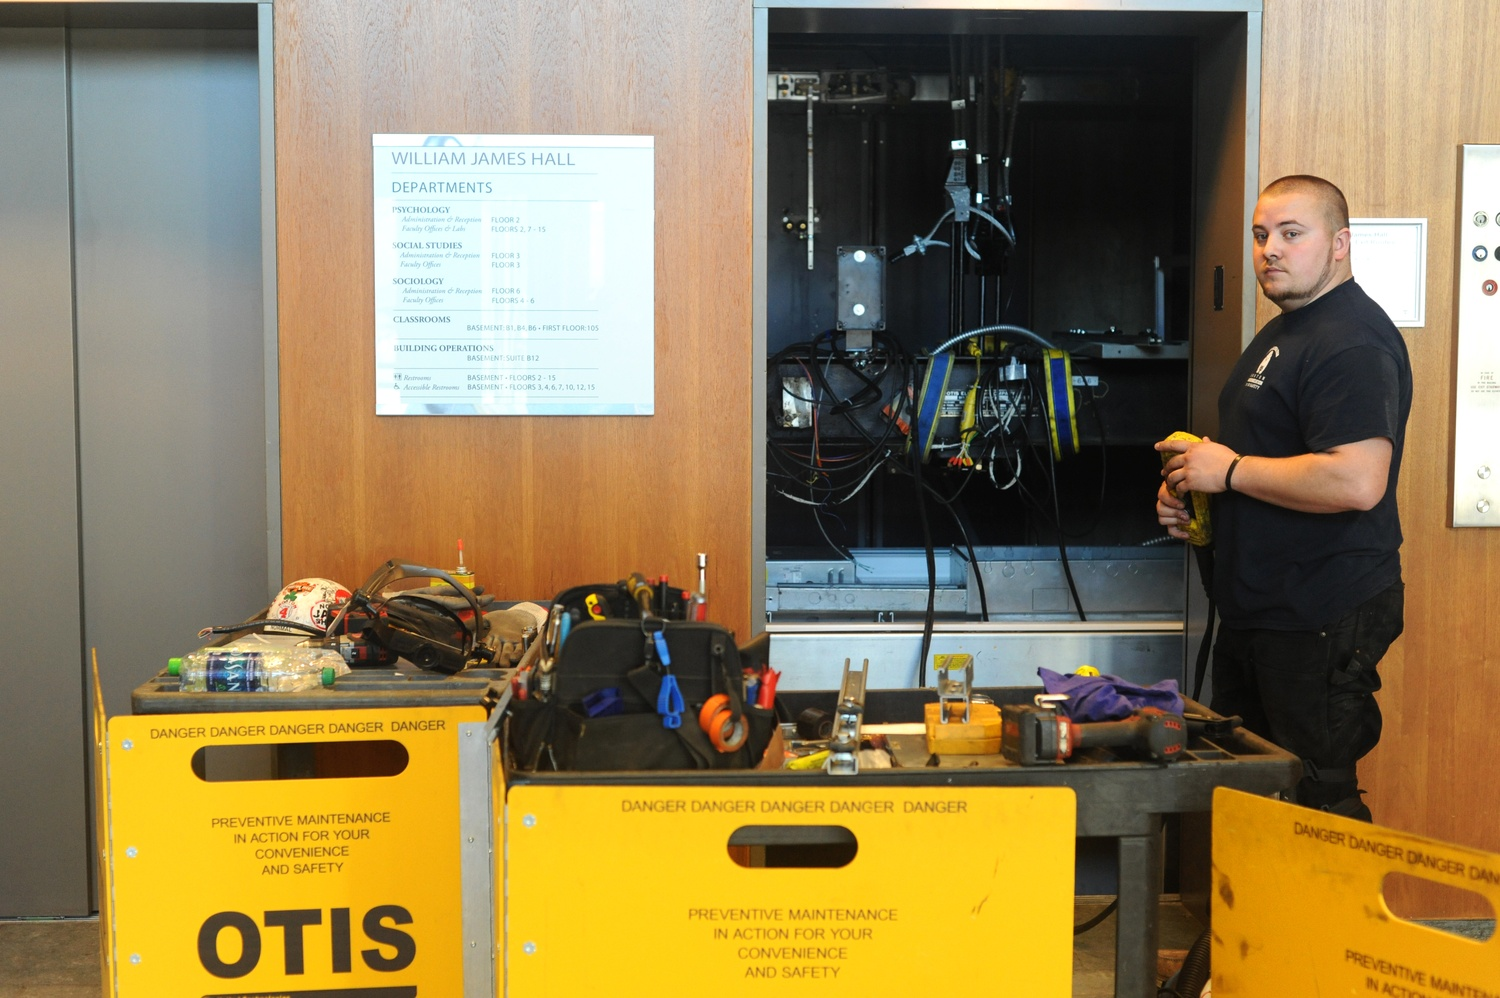 Chris Weenen performs maintenance on an elevator in William James Hall Monday afternoon.